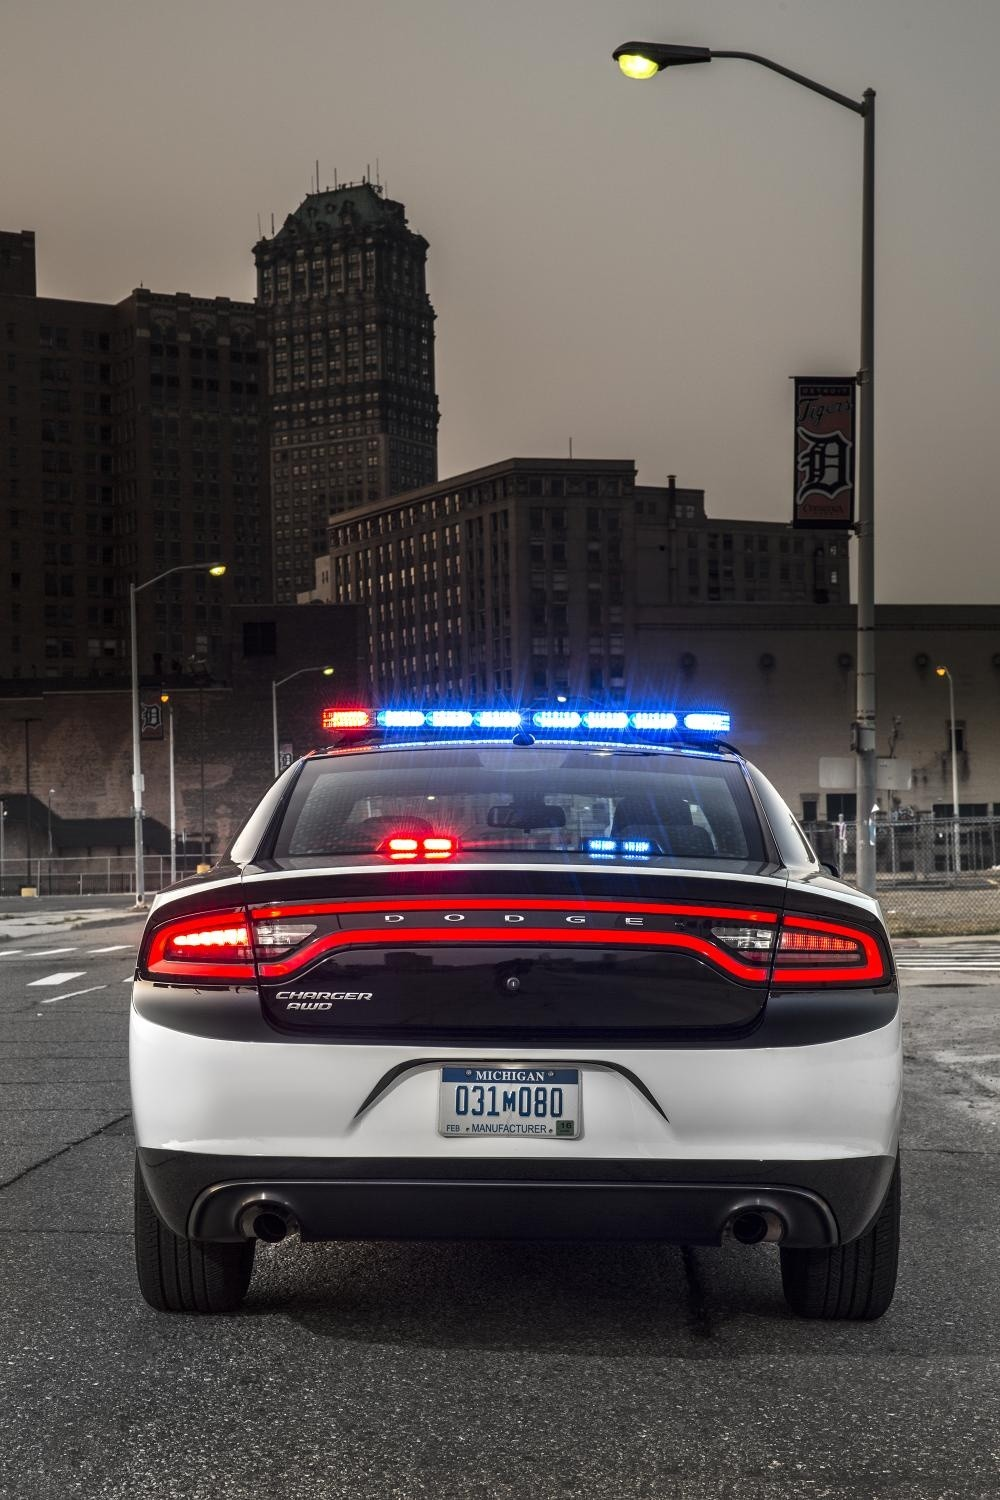 Charger Rt Dodge Charger R T Dodge Black Tires Muscle: 2016 Dodge Charger Pursuit Features A 12.1-inch